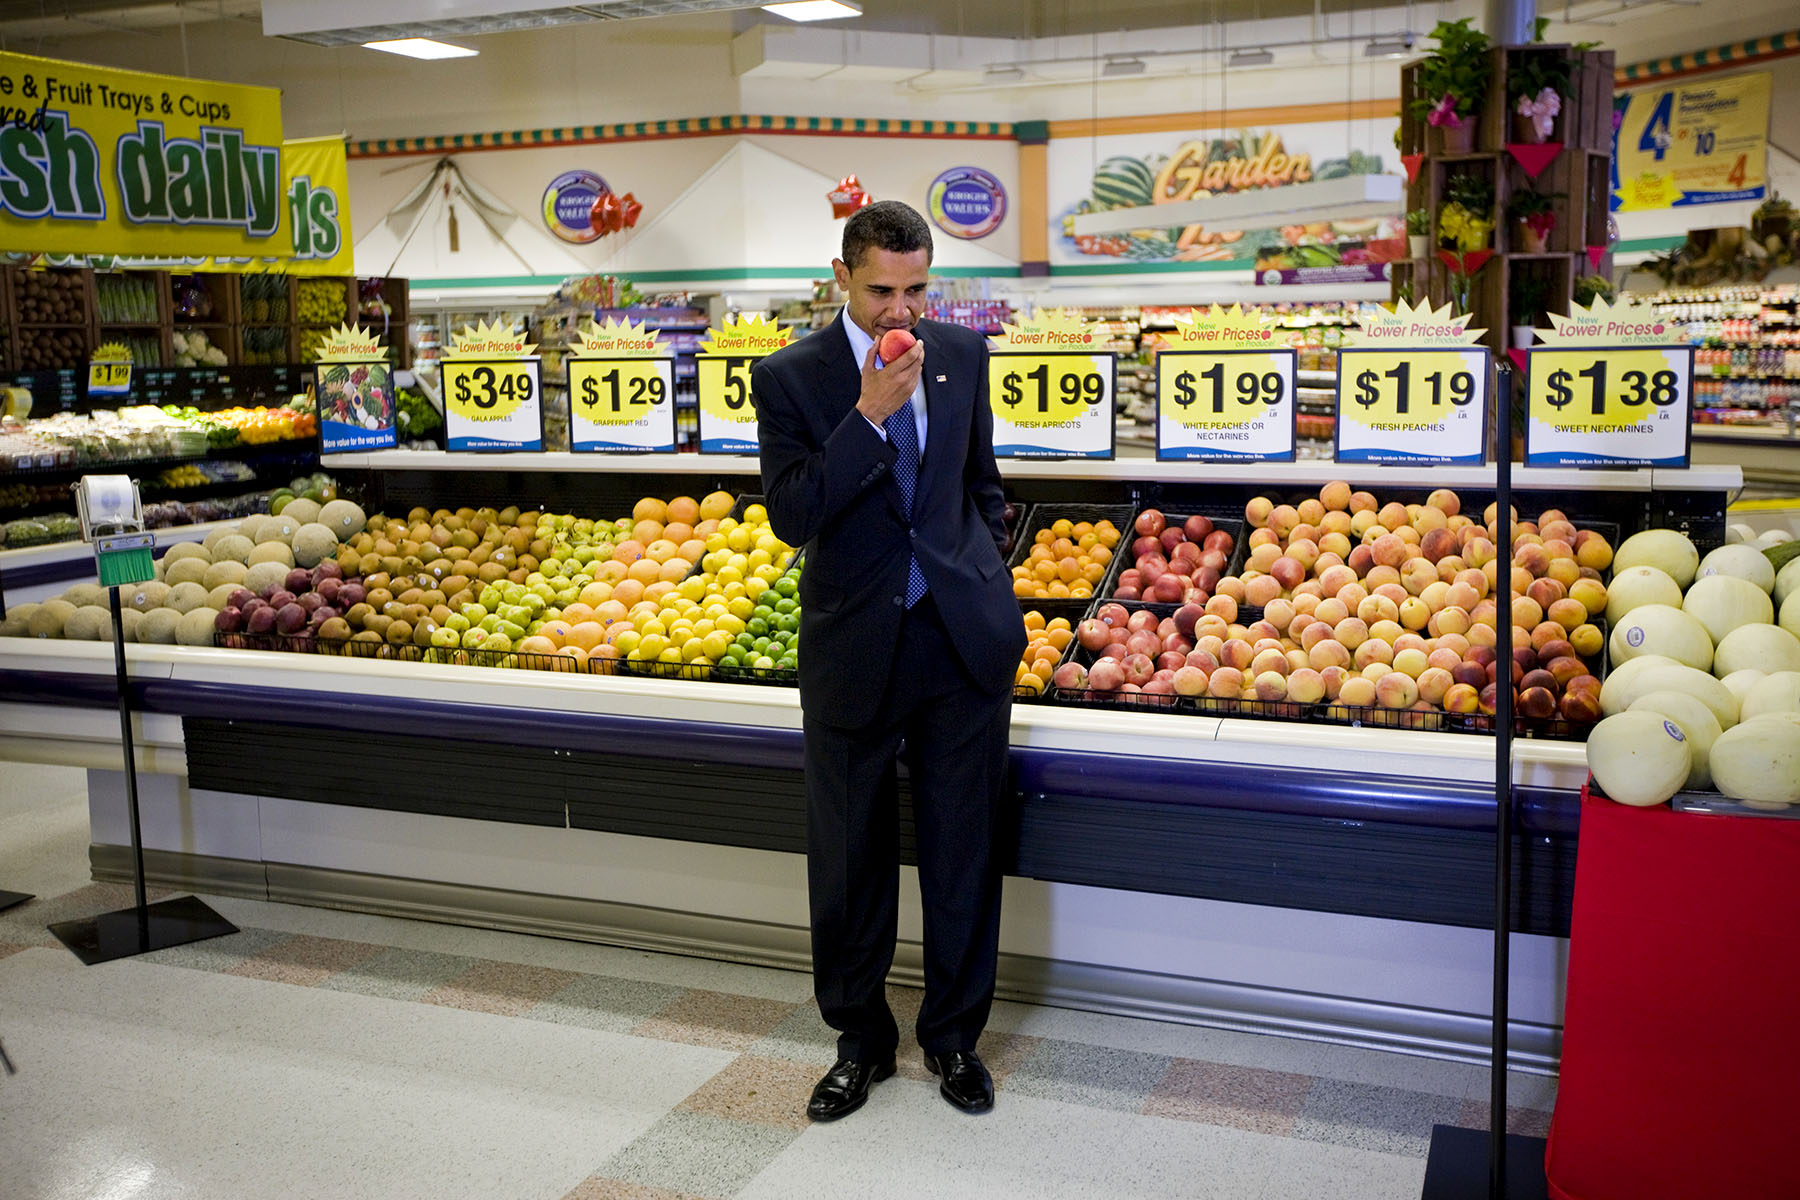 President Barack Obama picks out a peach after a town hall meeting on health care in a Kroger supermarket in Bristol, Va. Photo by Brooks Kraft/Corbis